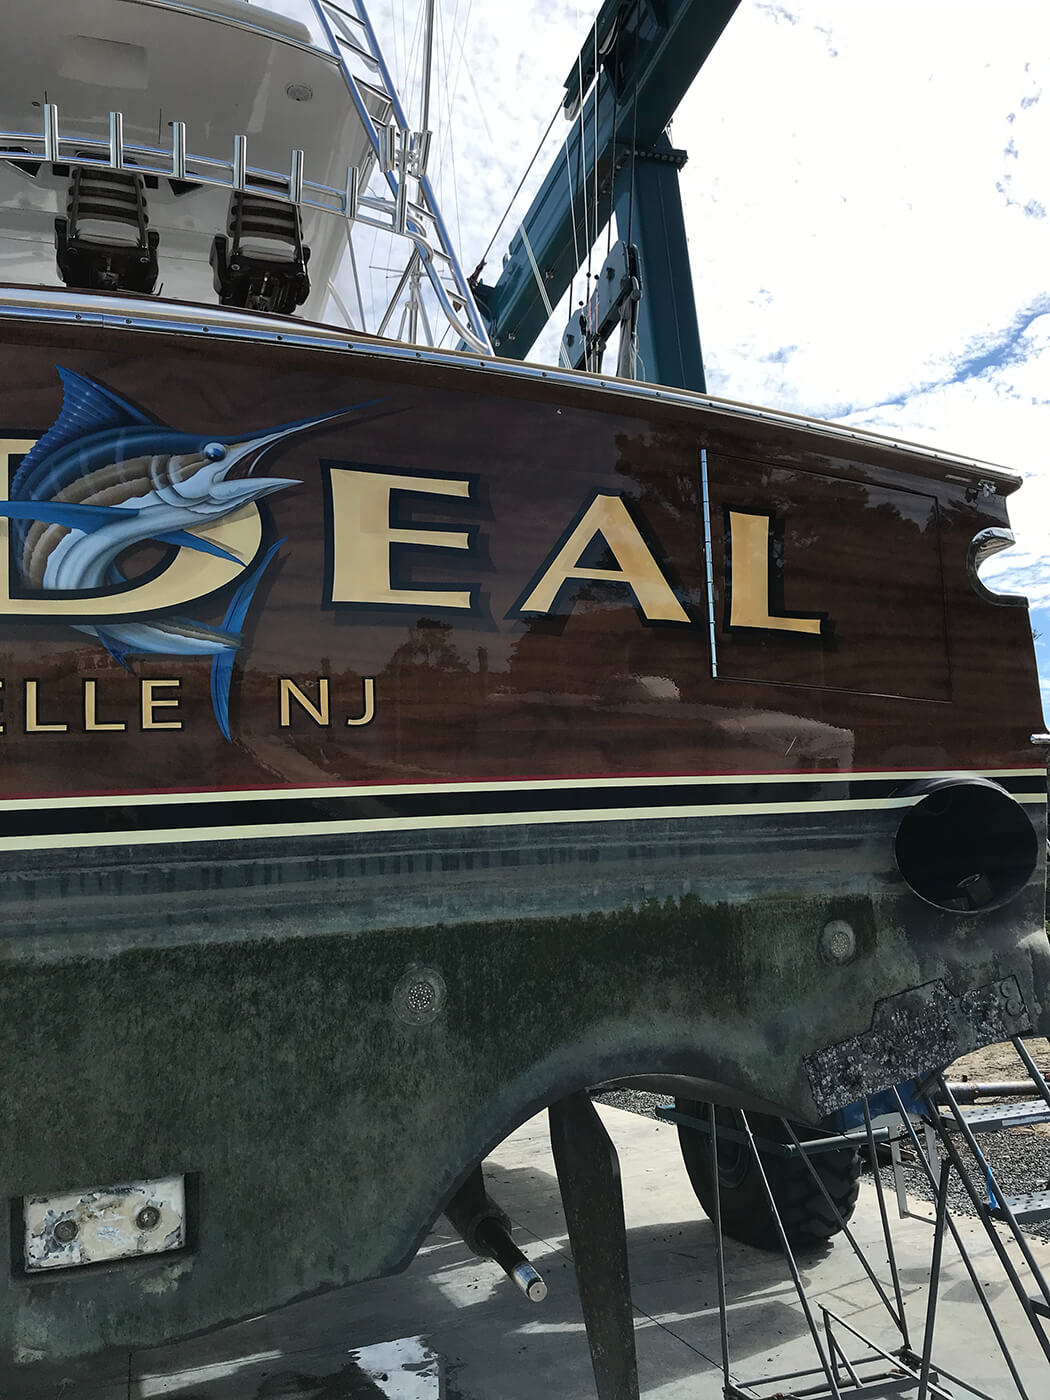 Big Deal Brielle New Jersey Boat Transom wanchese sportfishing boats